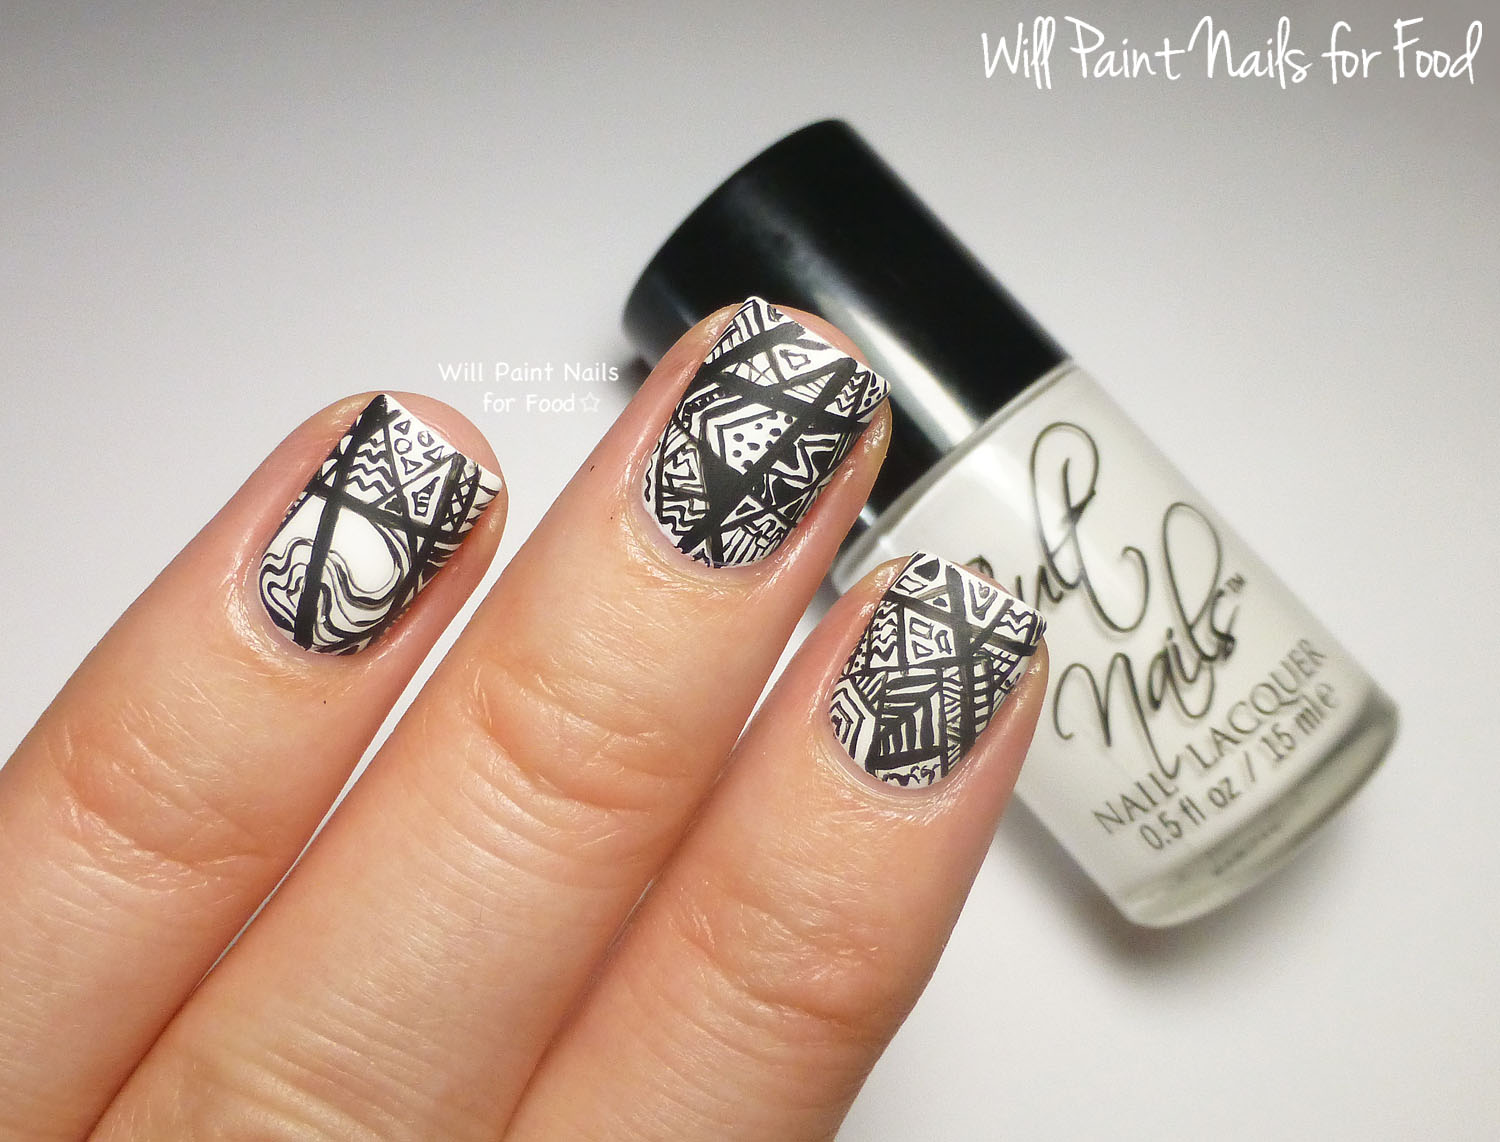 Black and white intricate abstract nail art